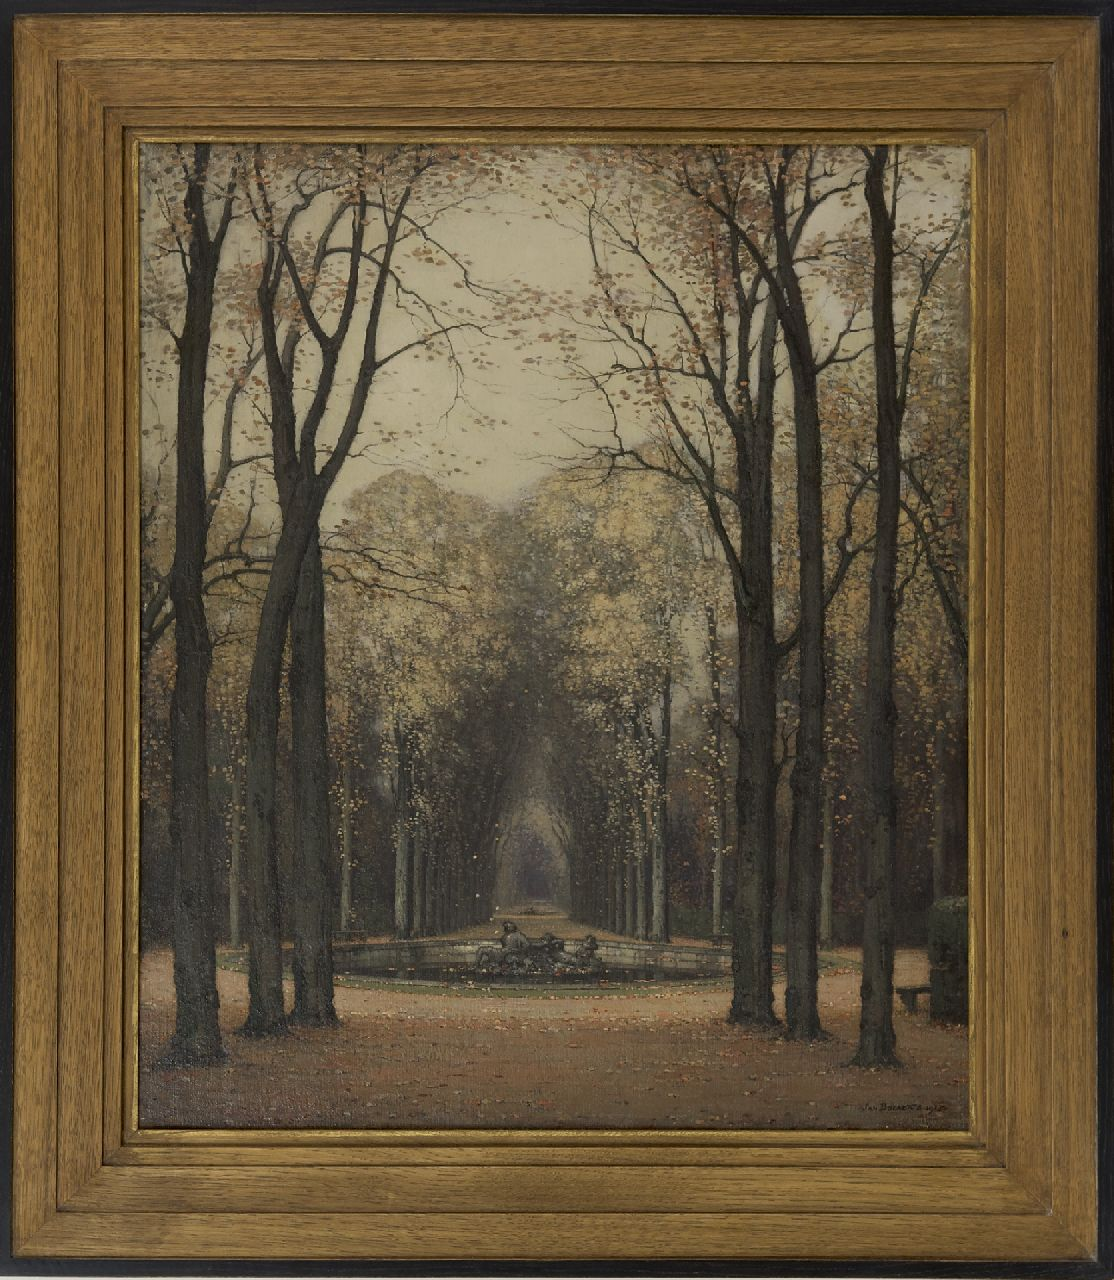 Bogaerts J.J.M.  | Johannes Jacobus Maria 'Jan' Bogaerts | Paintings offered for sale | Autumn at Versailles park, oil on canvas 65.4 x 55.8 cm, signed l.r. and dated 1913